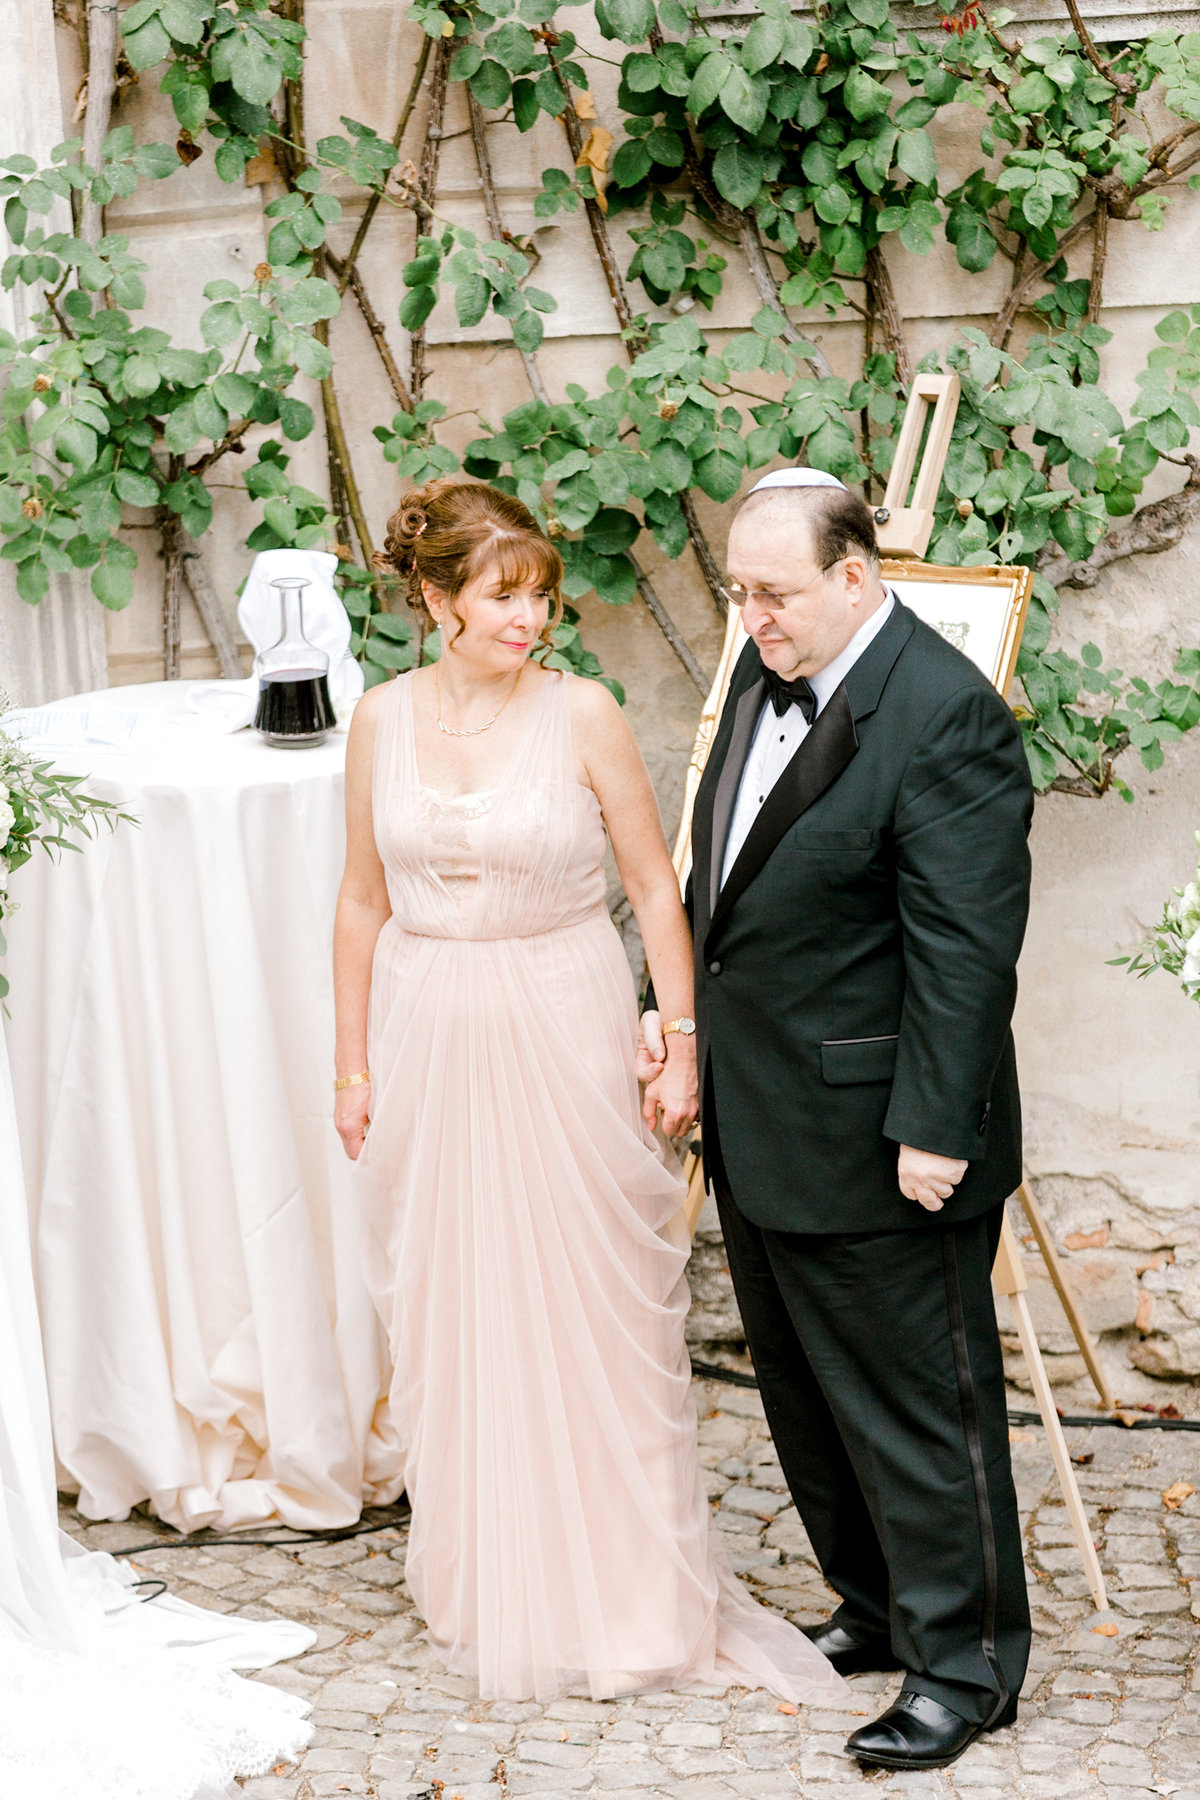 Destination-Vineyard-Italian-Wedding-New-York-Photographer-Jessica-Haley-Photo-39